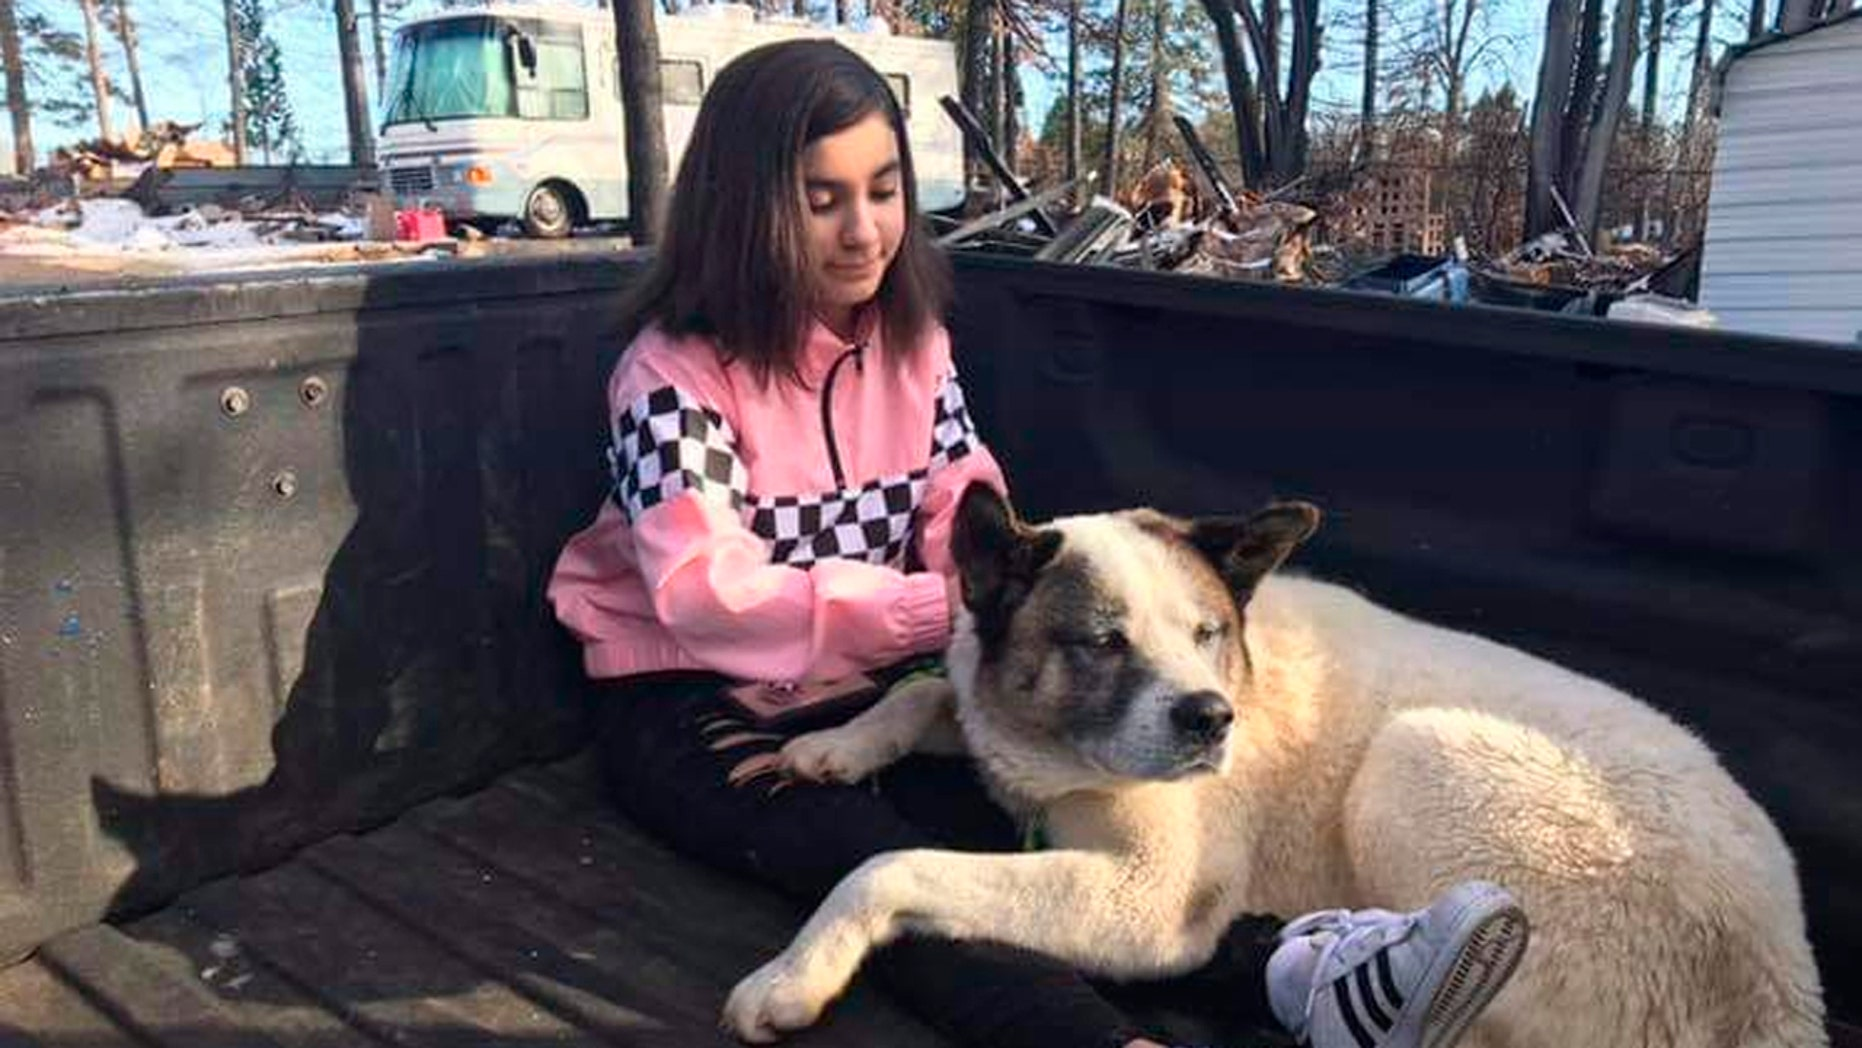 This Feb. 18, 2019 photo provided by Ben Lepe shows Maleah Ballejos reunited with her dog Kingston in Paradise, Calif. The Akita named Kingston was reunited with his family 101 days after he jumped out of their truck as they fled a devastating Northern California wildfire.